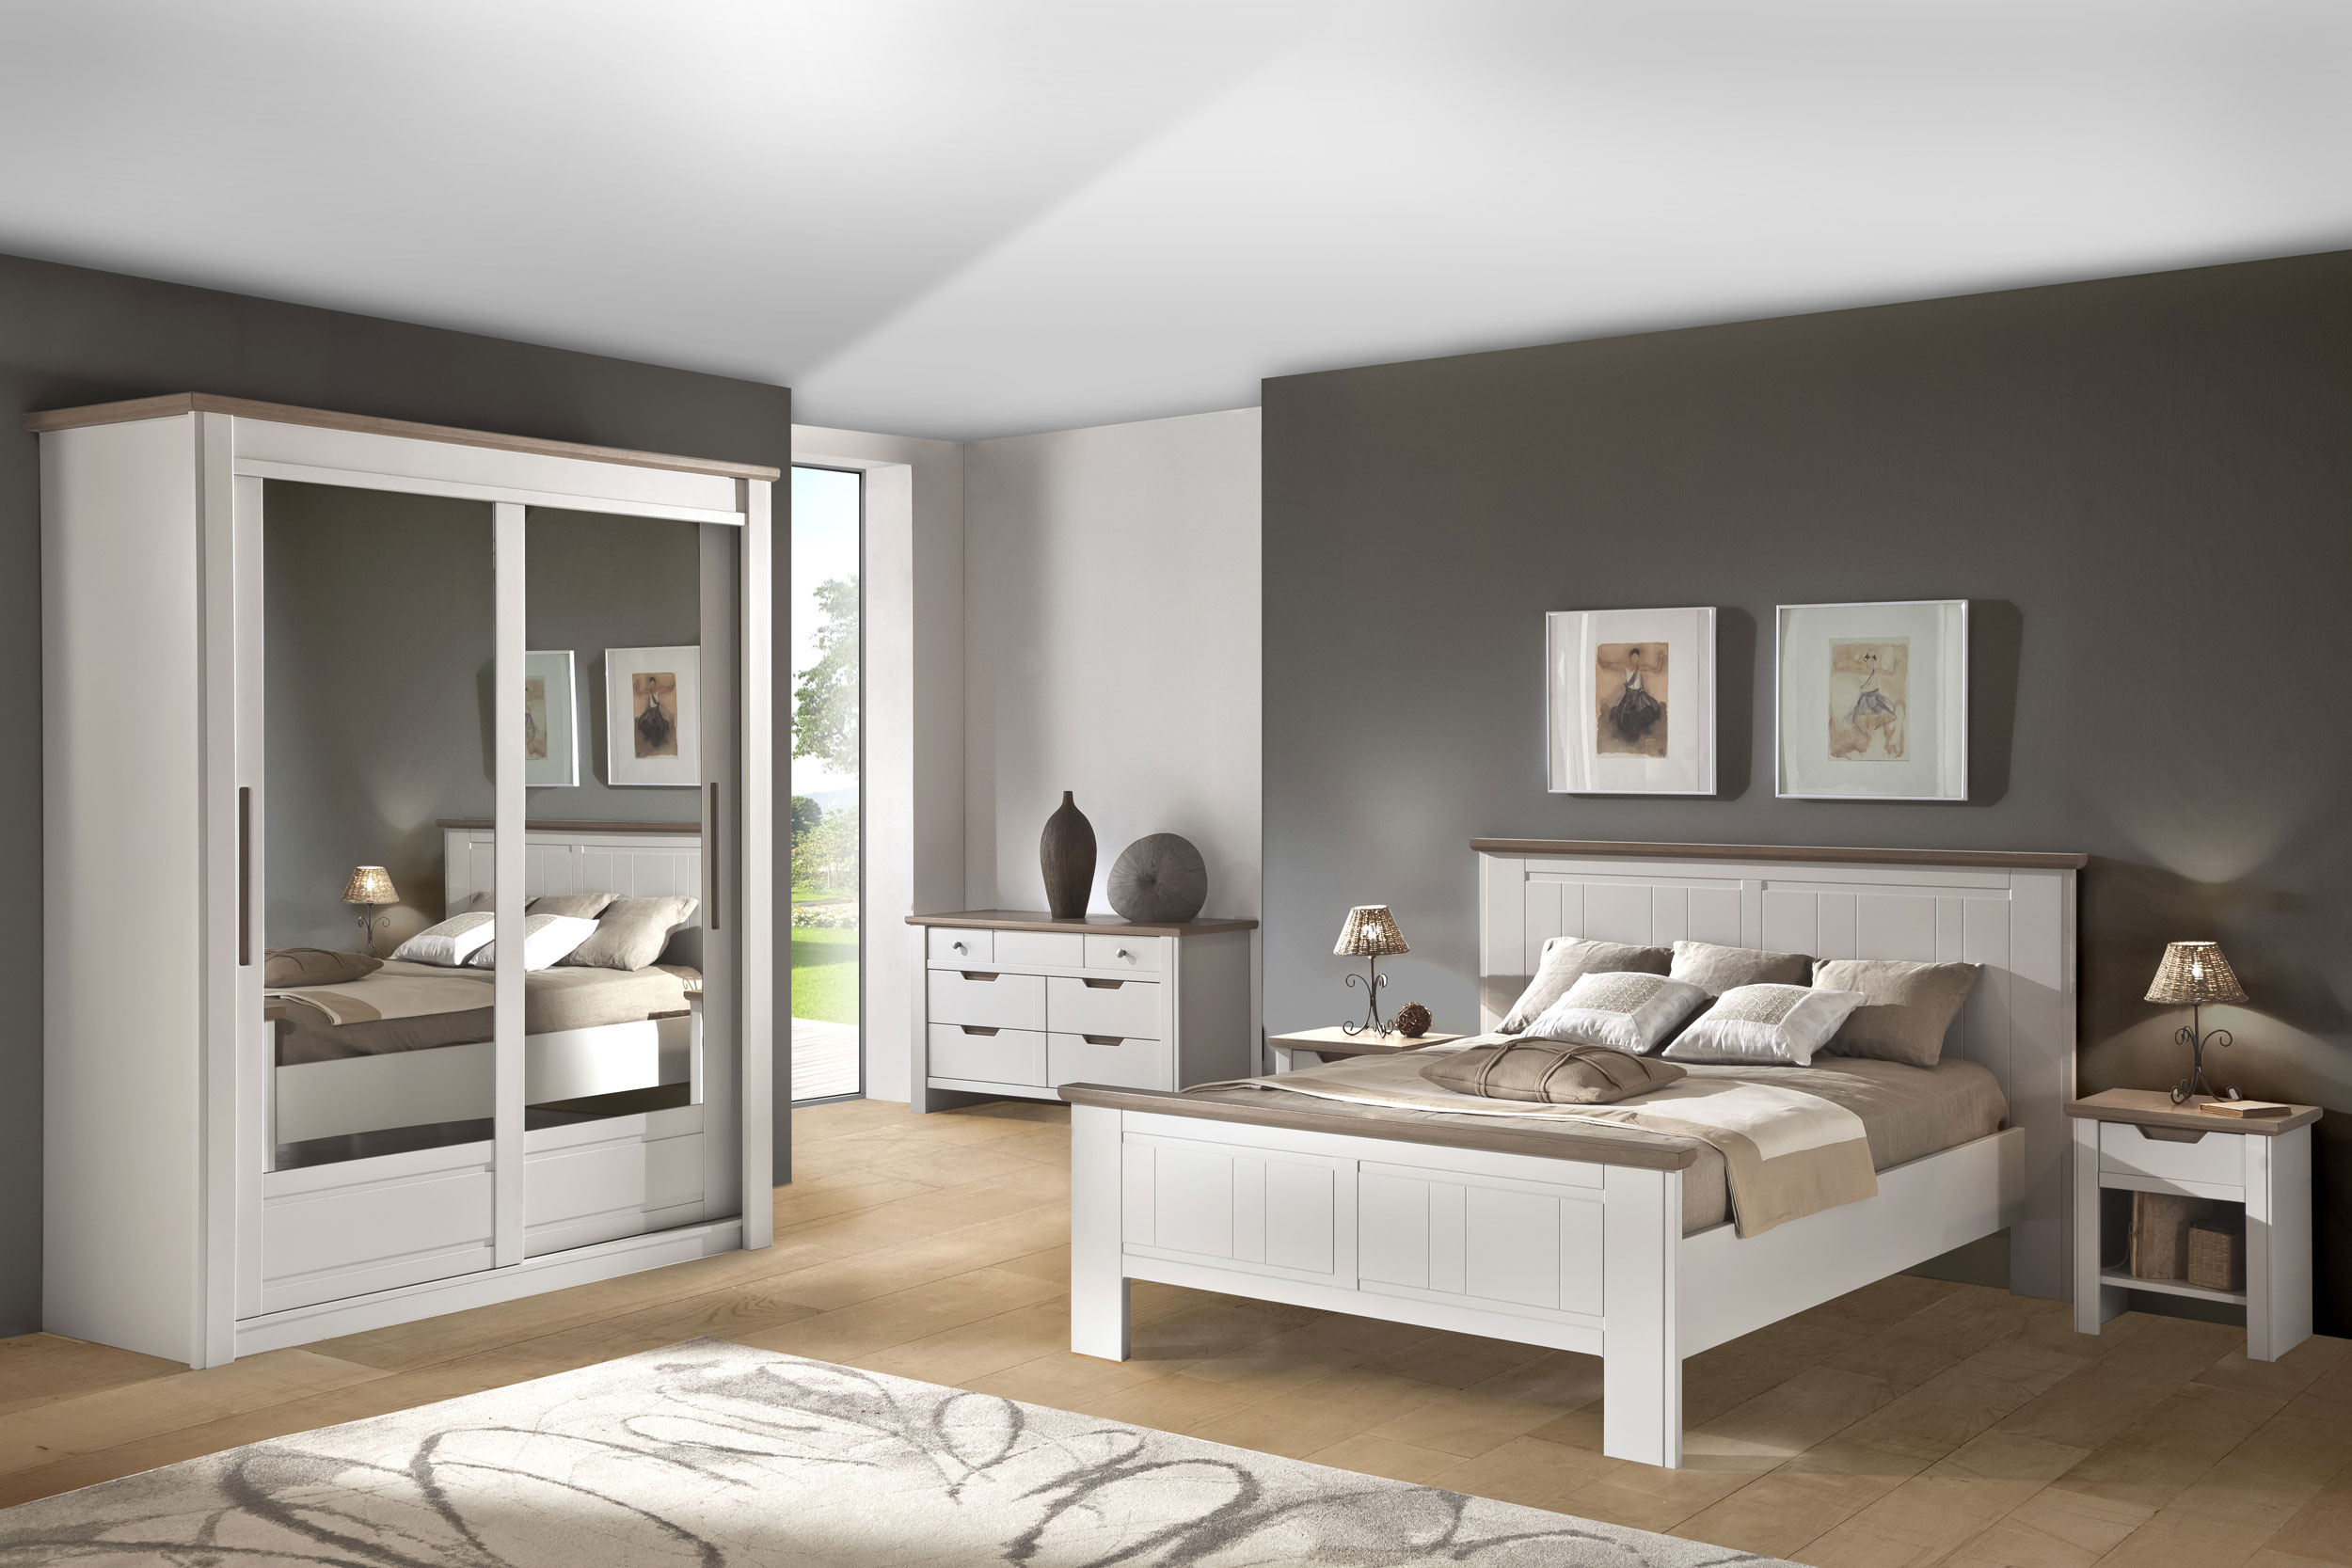 D coration chambre meuble for Mobilier chambre adulte complete design